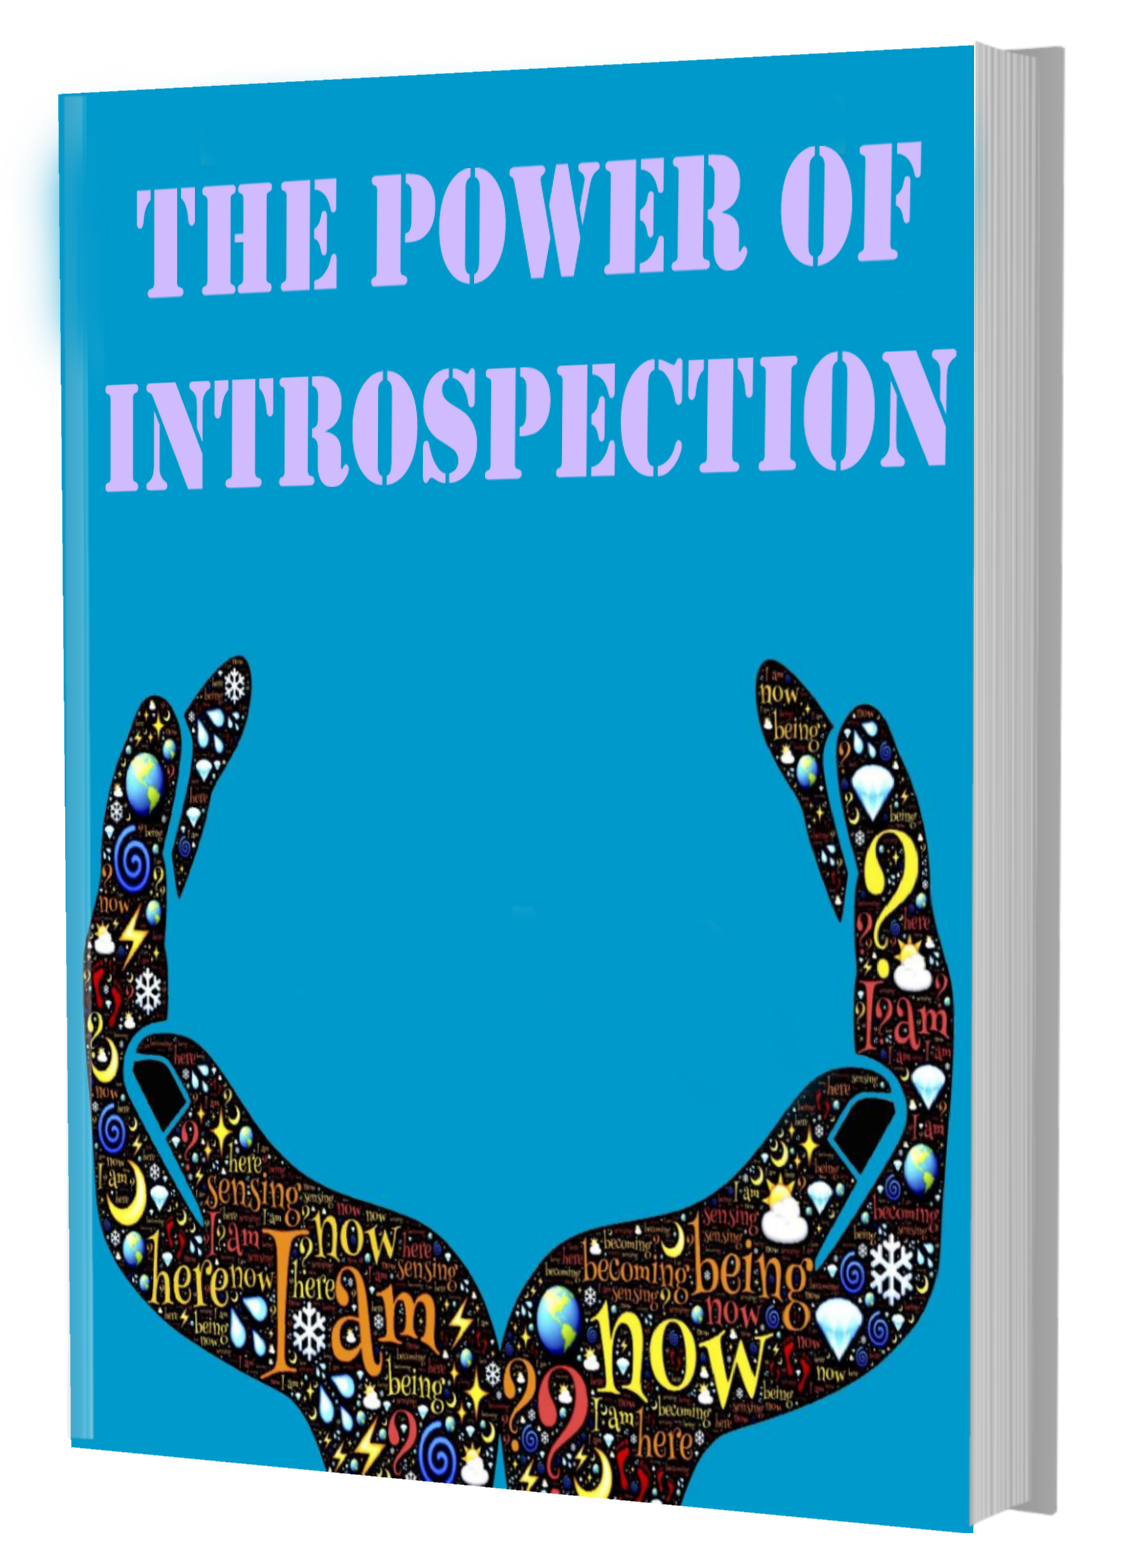 The Power of Introspection